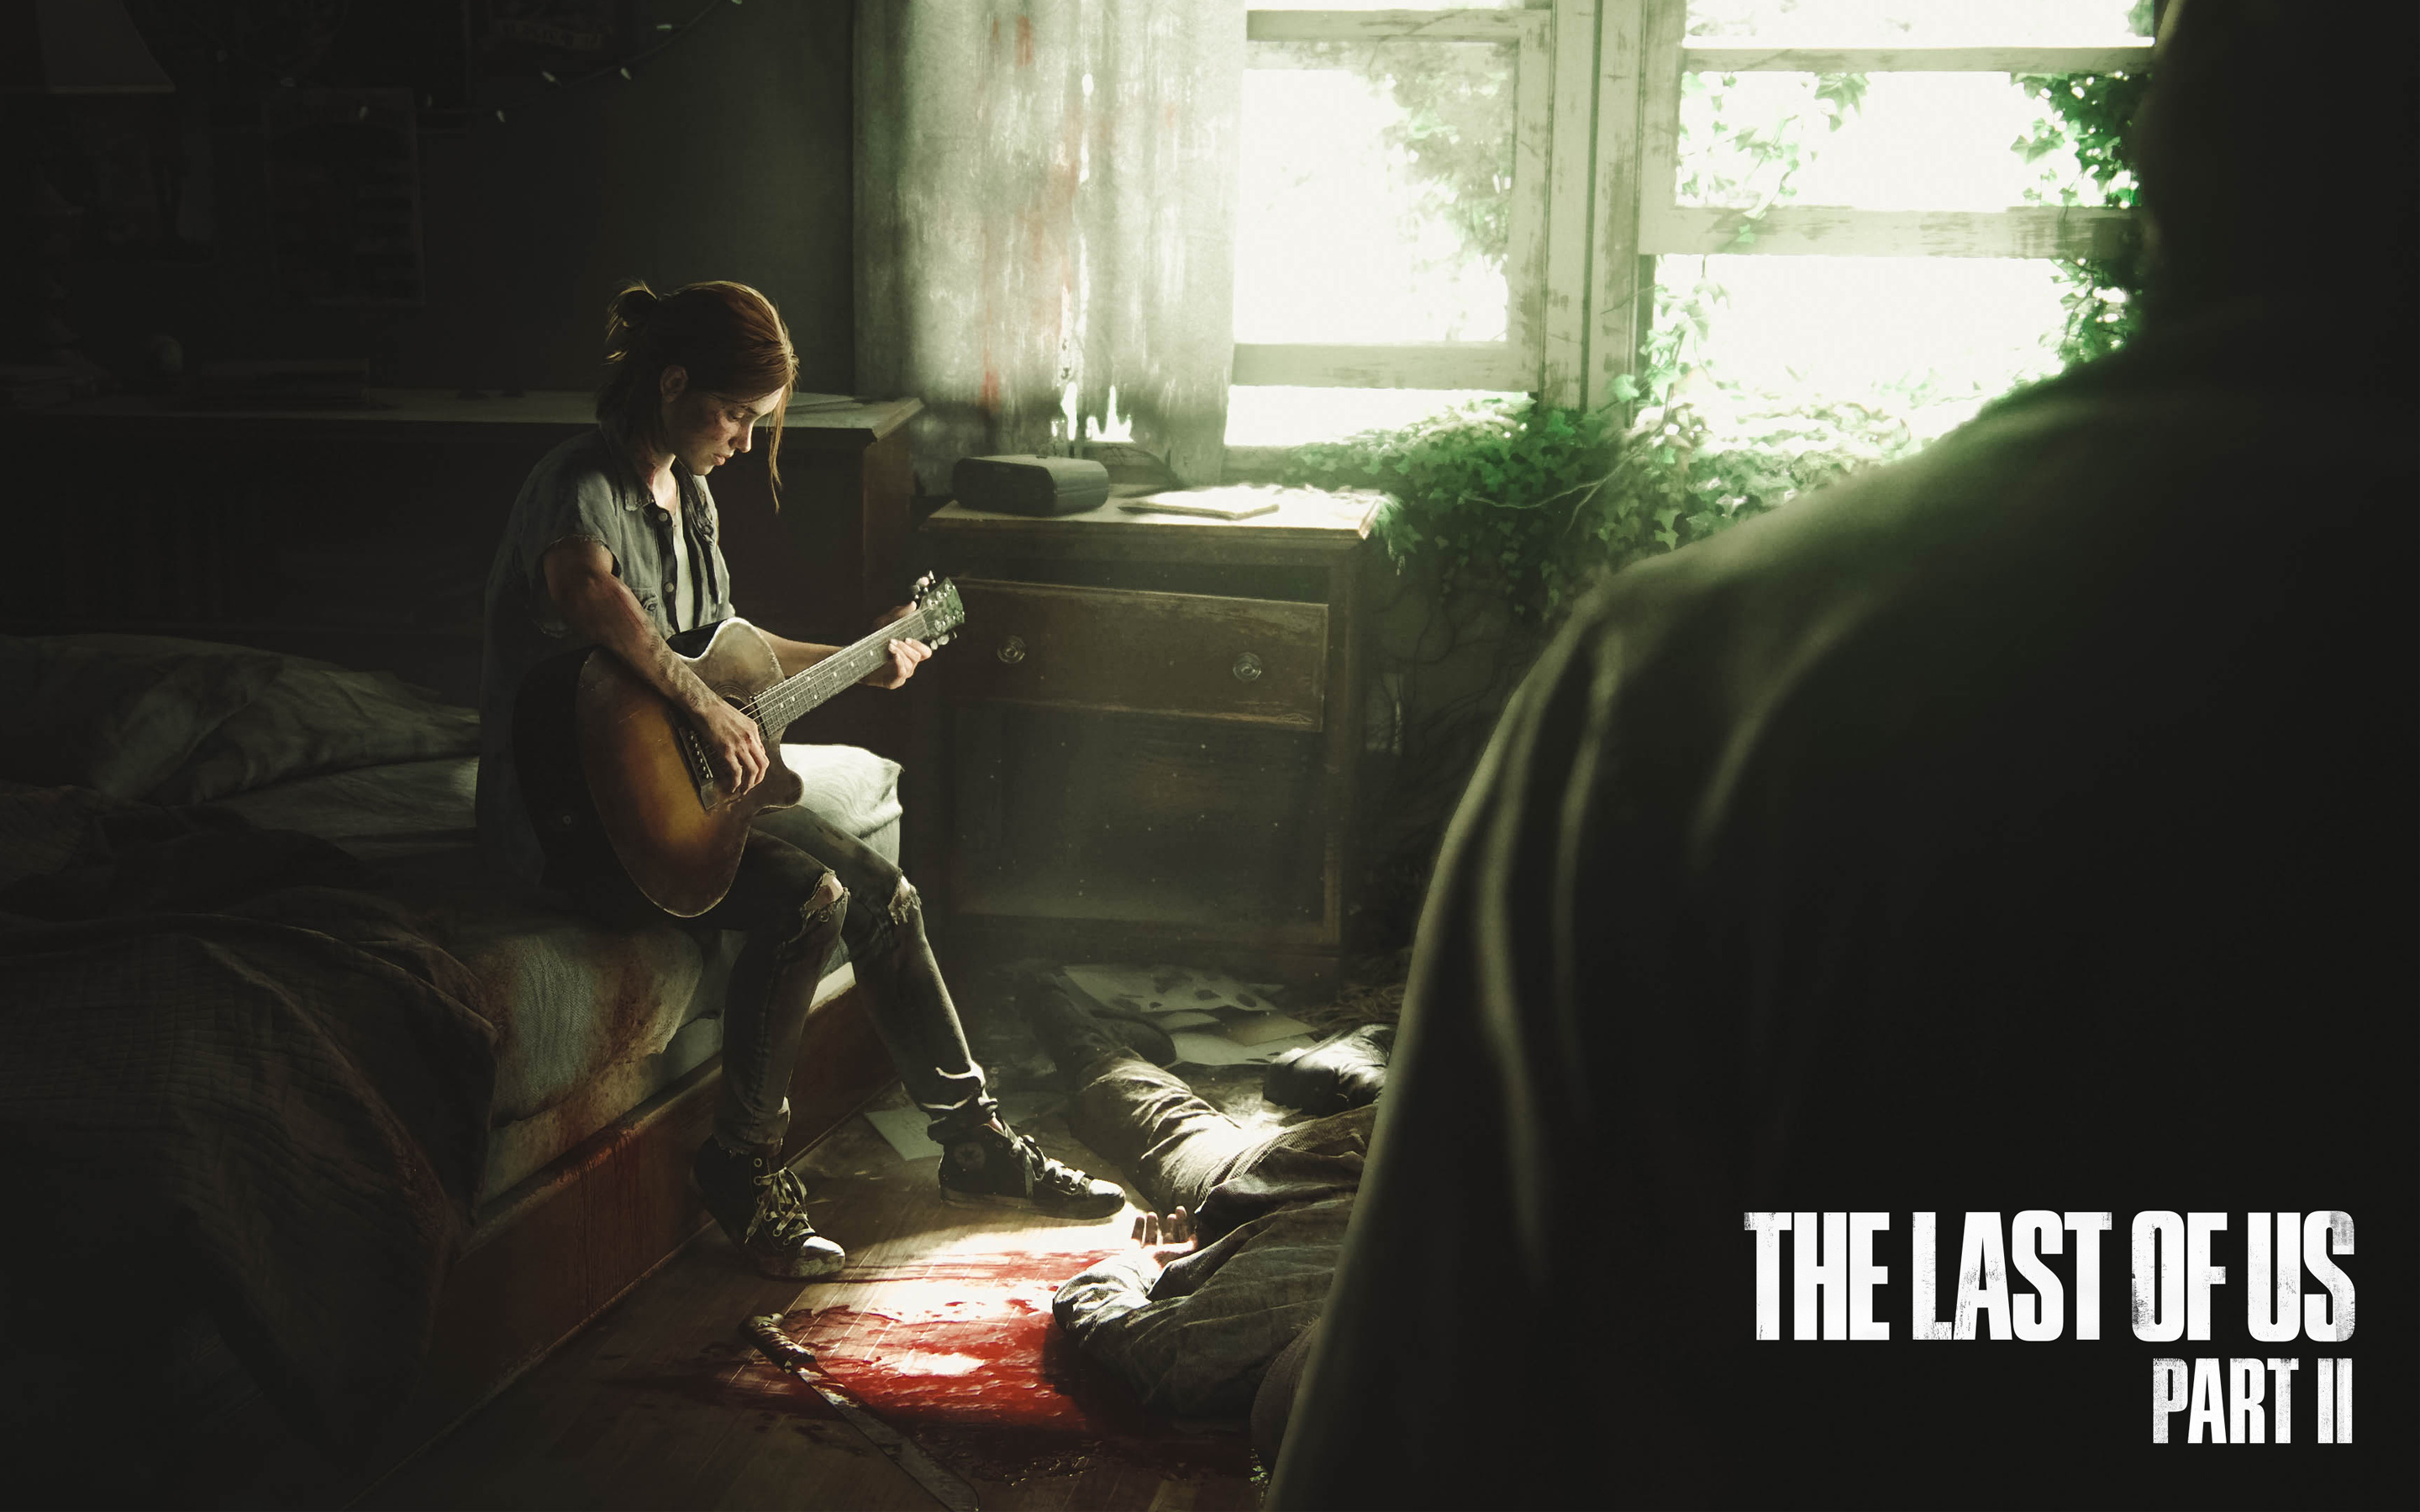 Free Download The Last Of Us Part Ii Hd Wallpapers And Background